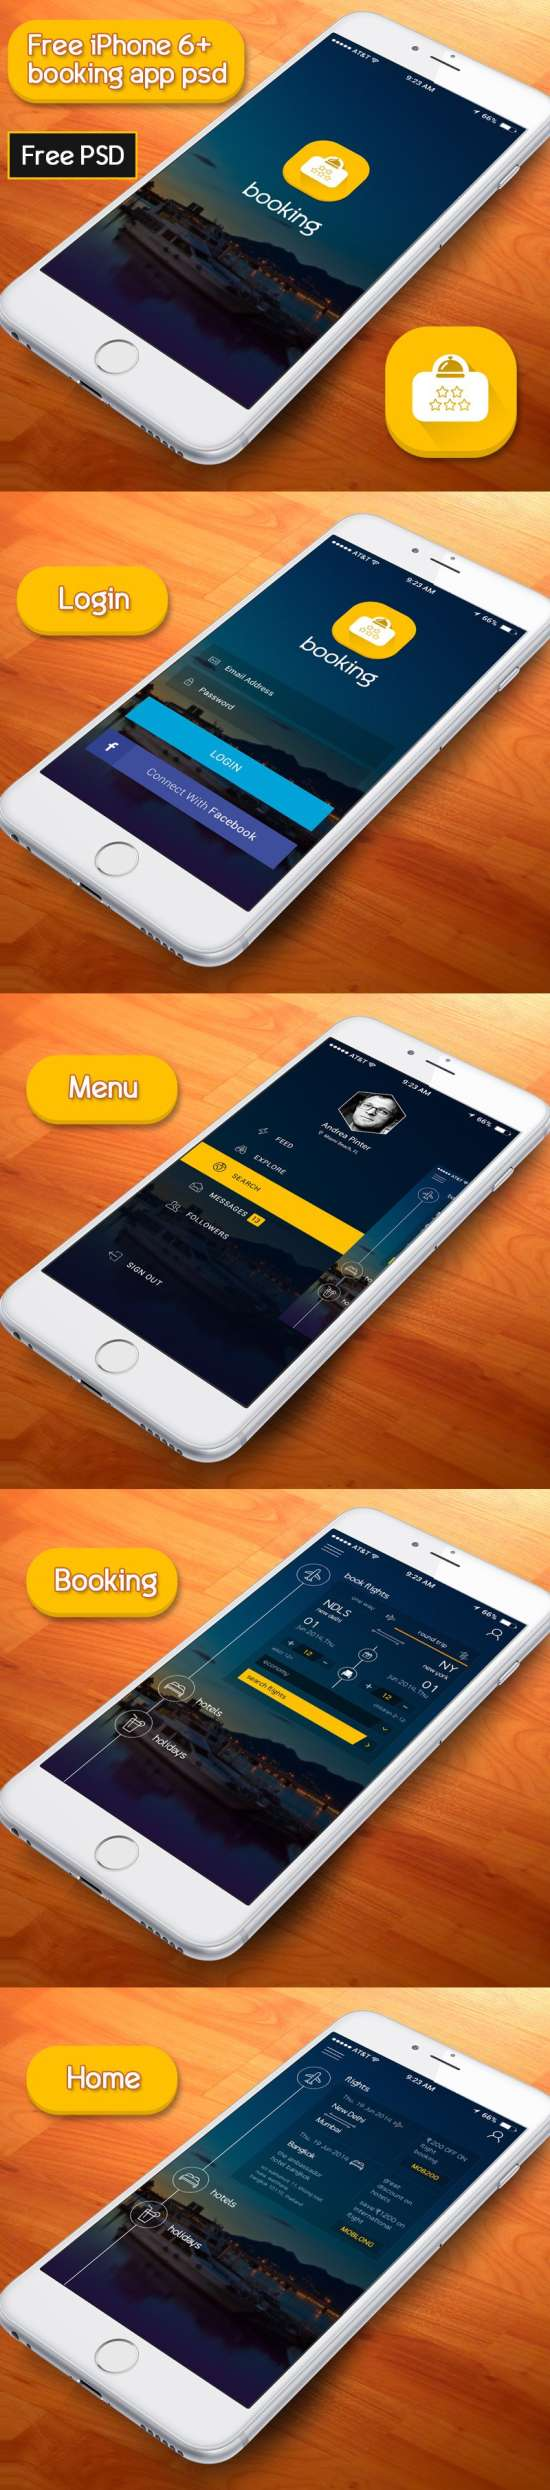 free booking app psd based on iphone 6